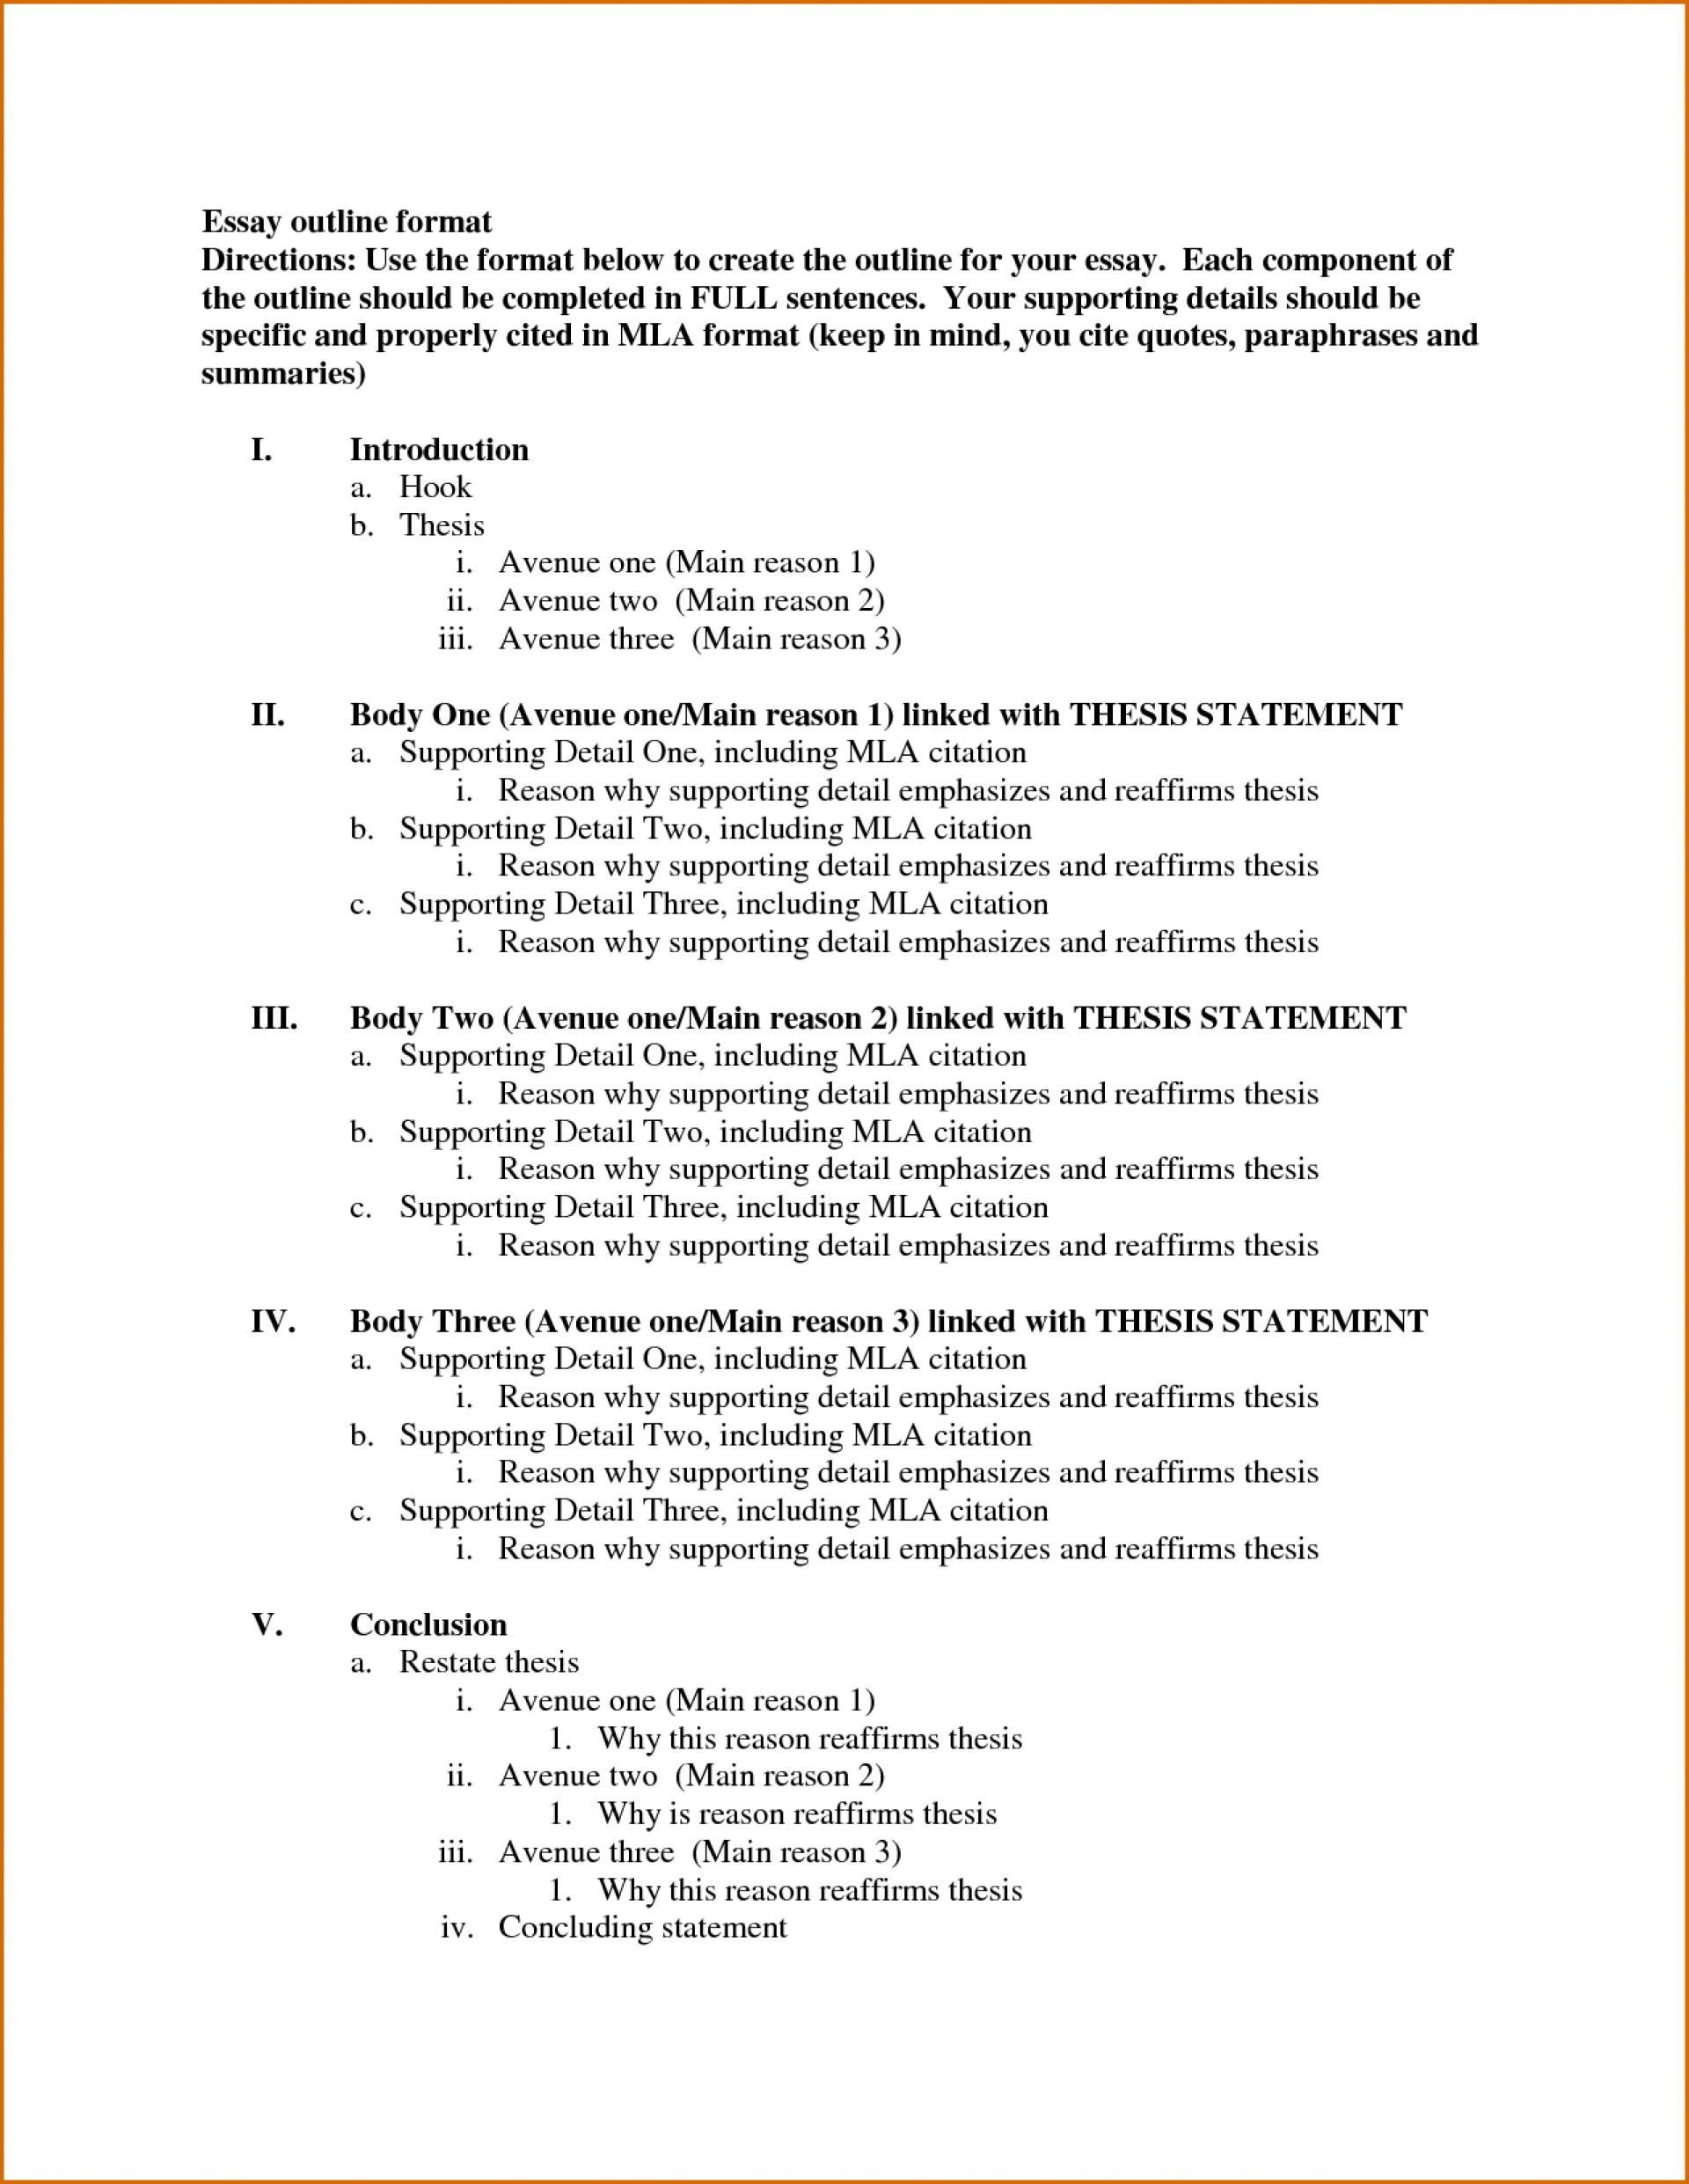 015 Essay Outline Template Format Of An Awful Apa Example Academic Conclusion Style 1920